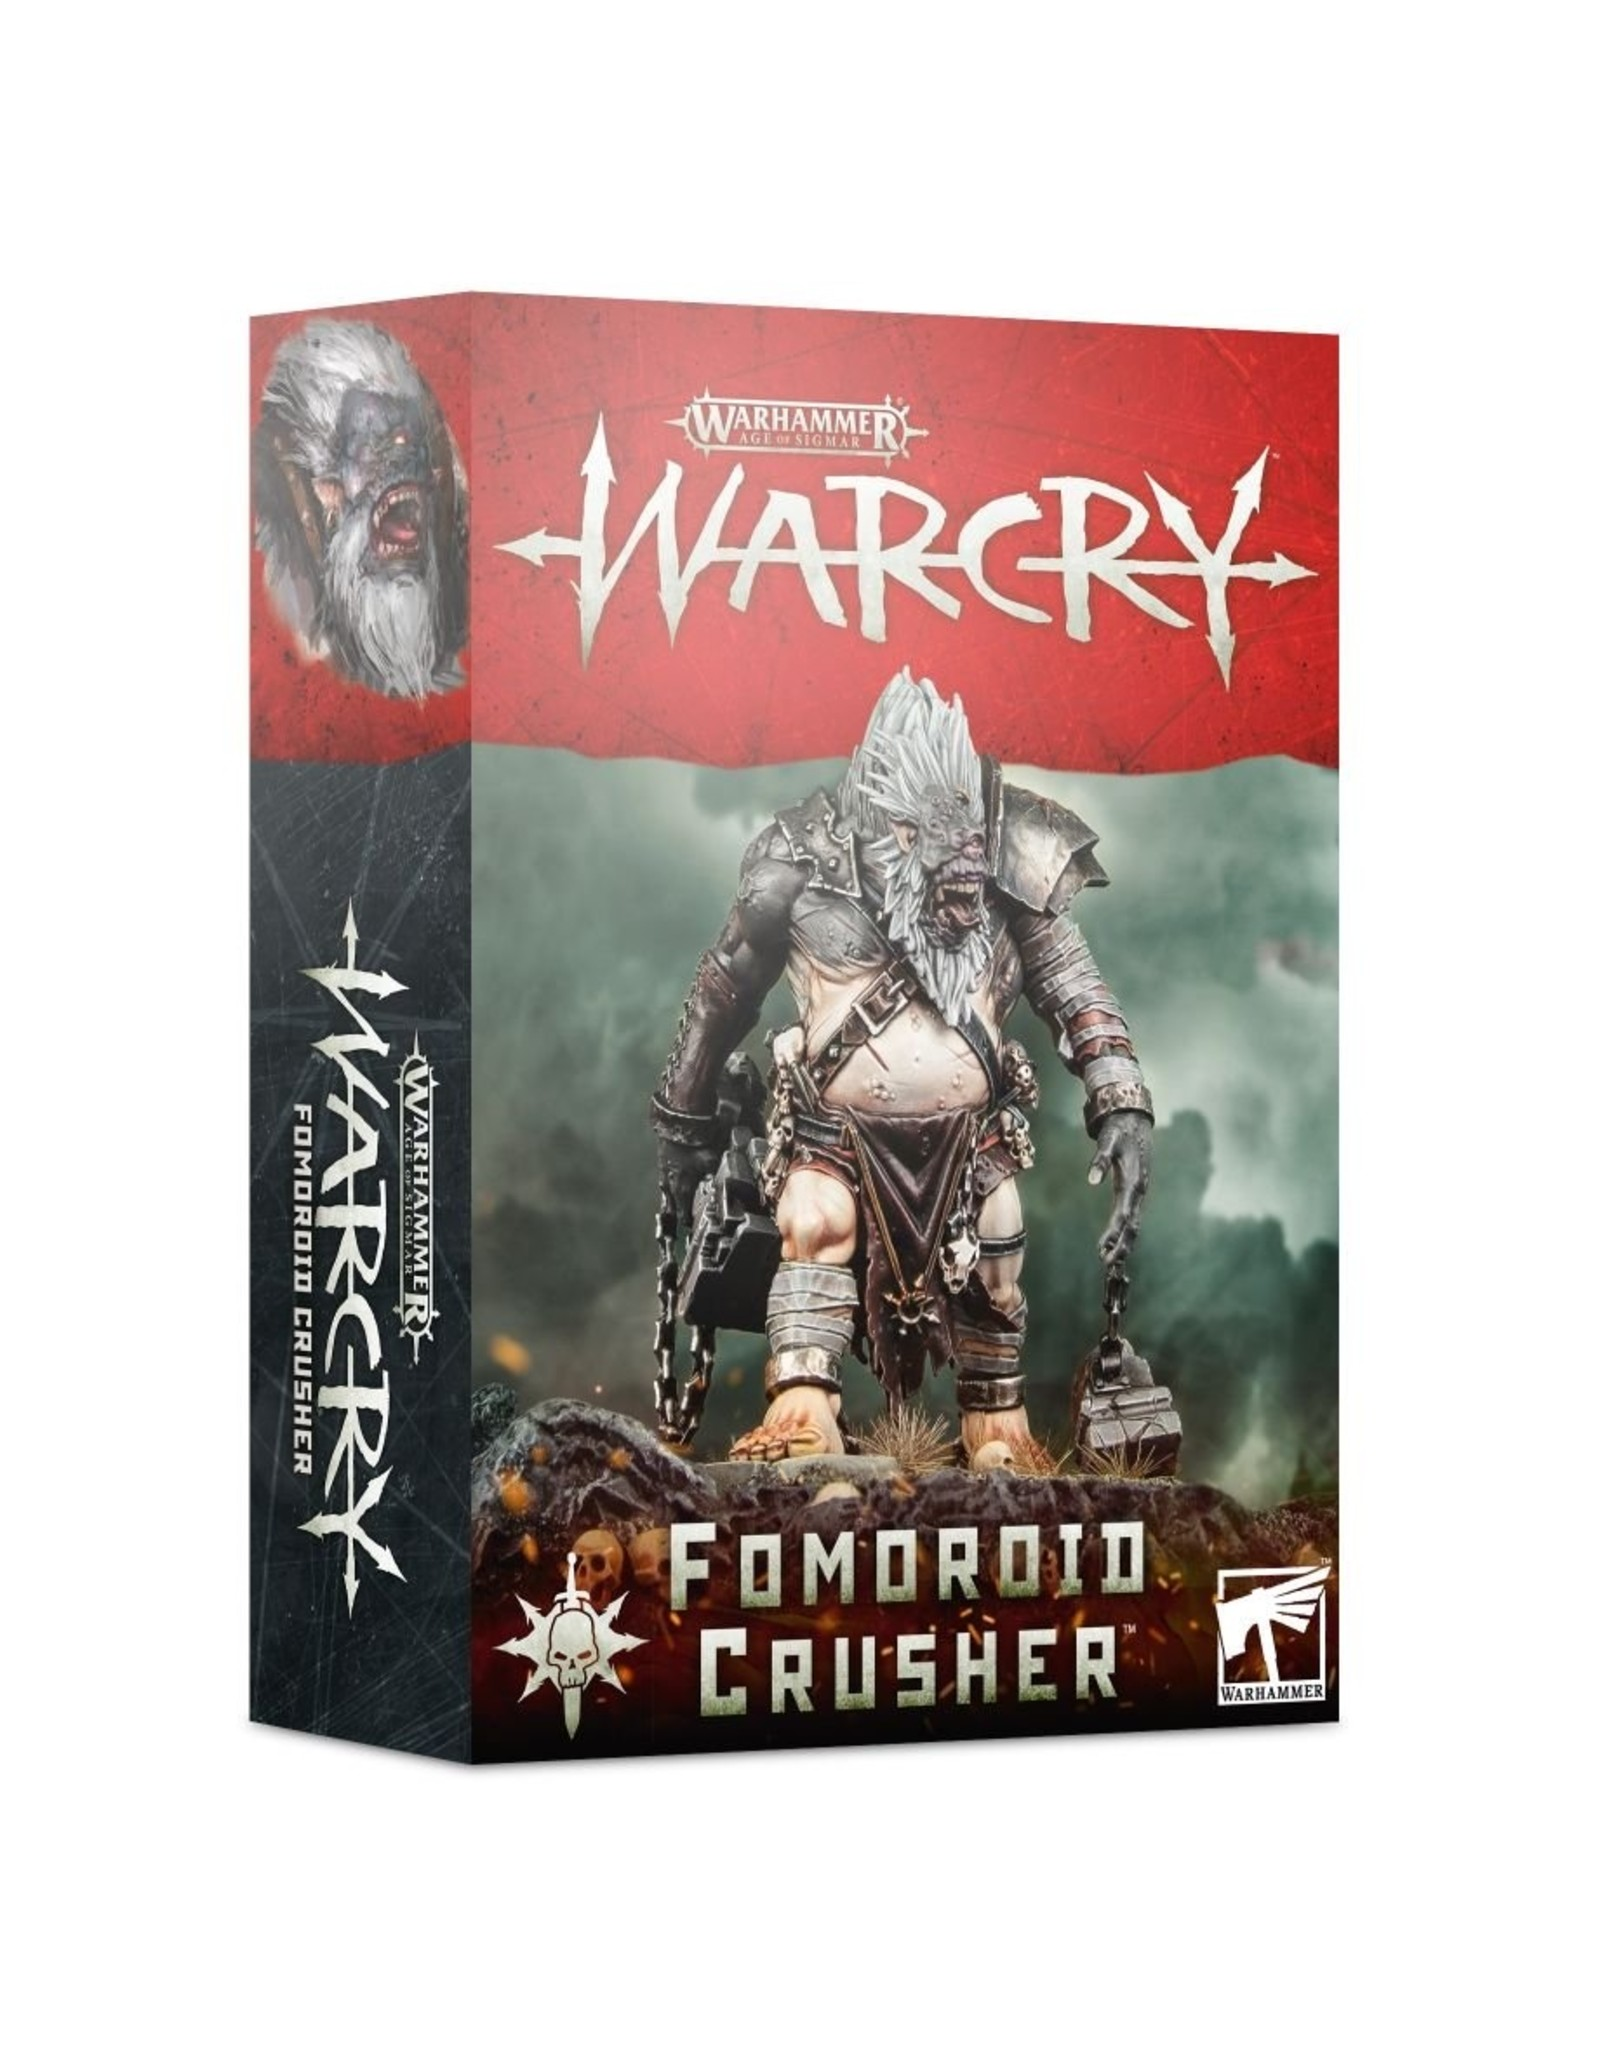 Games Workshop Warcry: Fomoroid Crusher